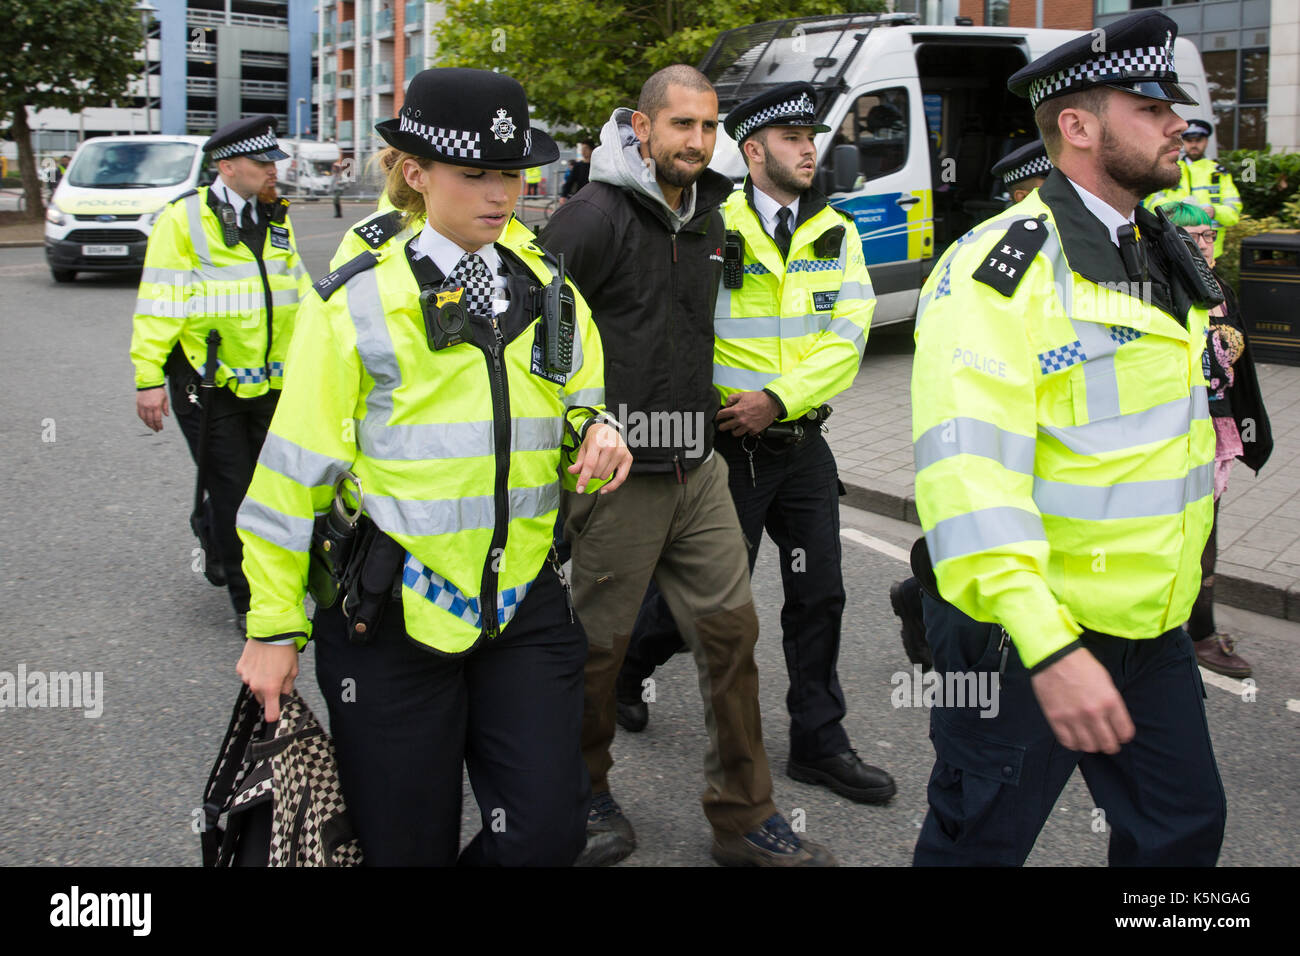 British Police Weapons Stock Photos & British Police ...